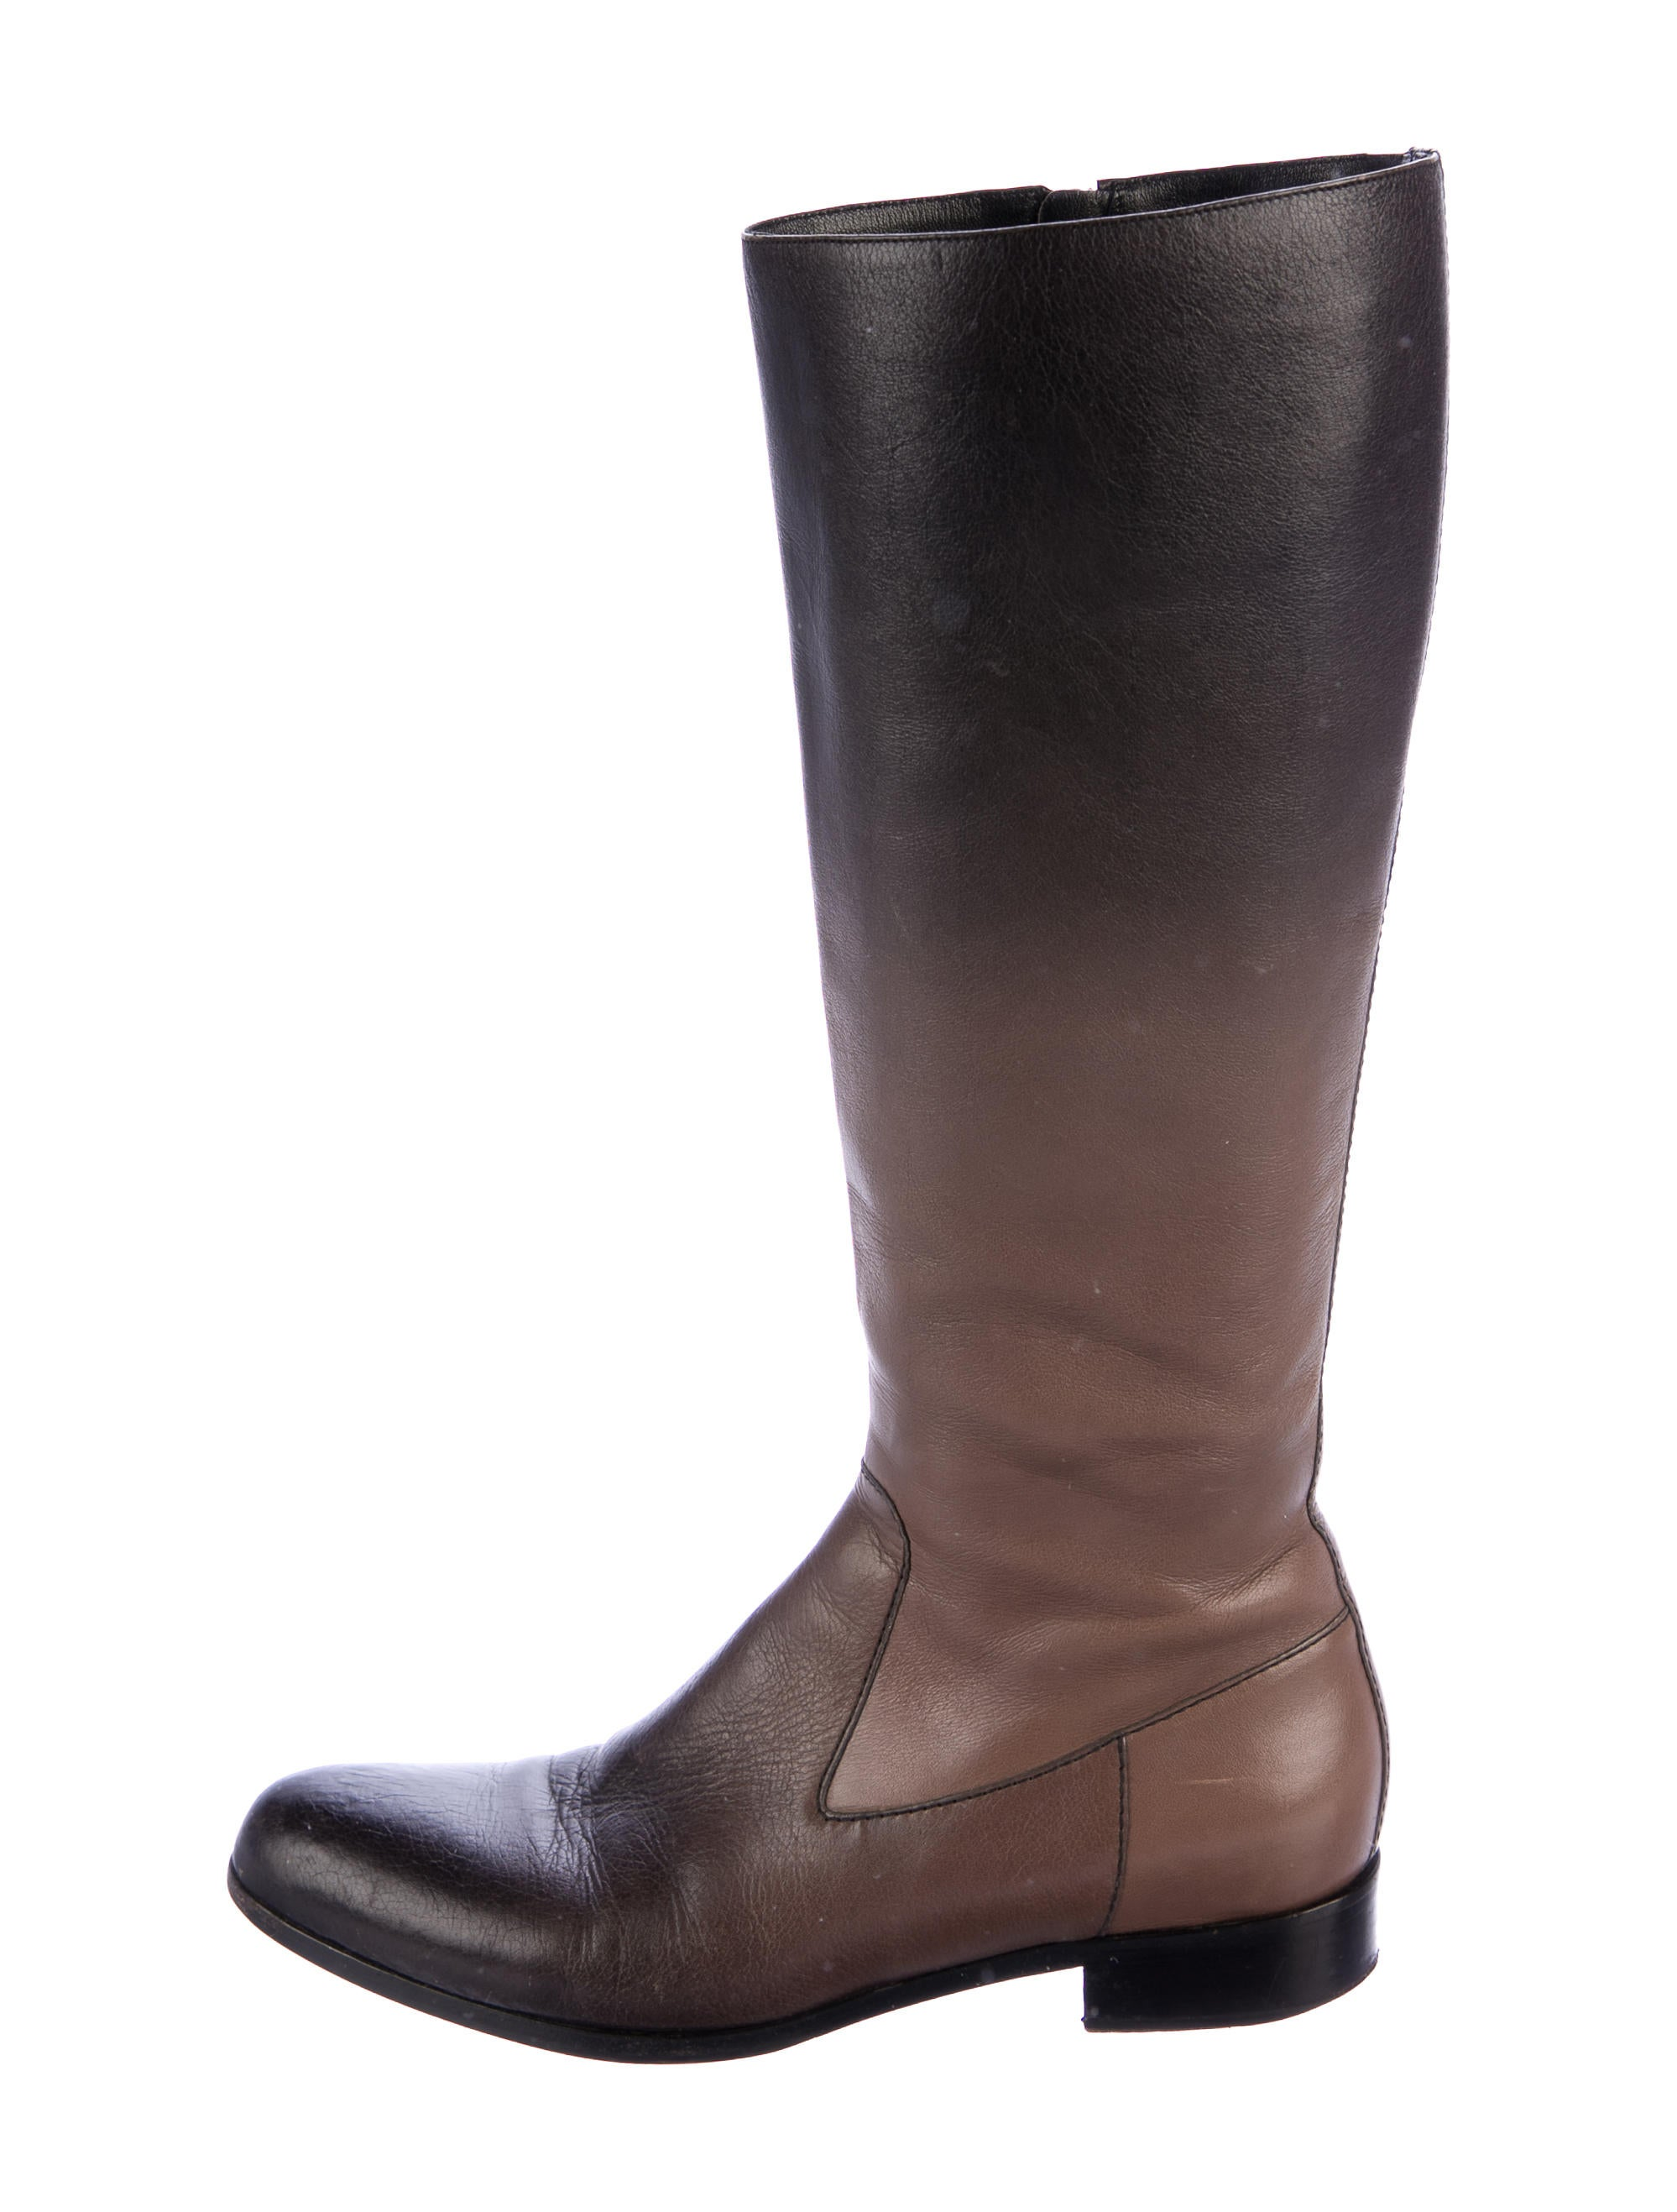 Prada Ombré Knee-High Boots sale 2014 with credit card free shipping clearance recommend free shipping deals outlet buy COJqutA